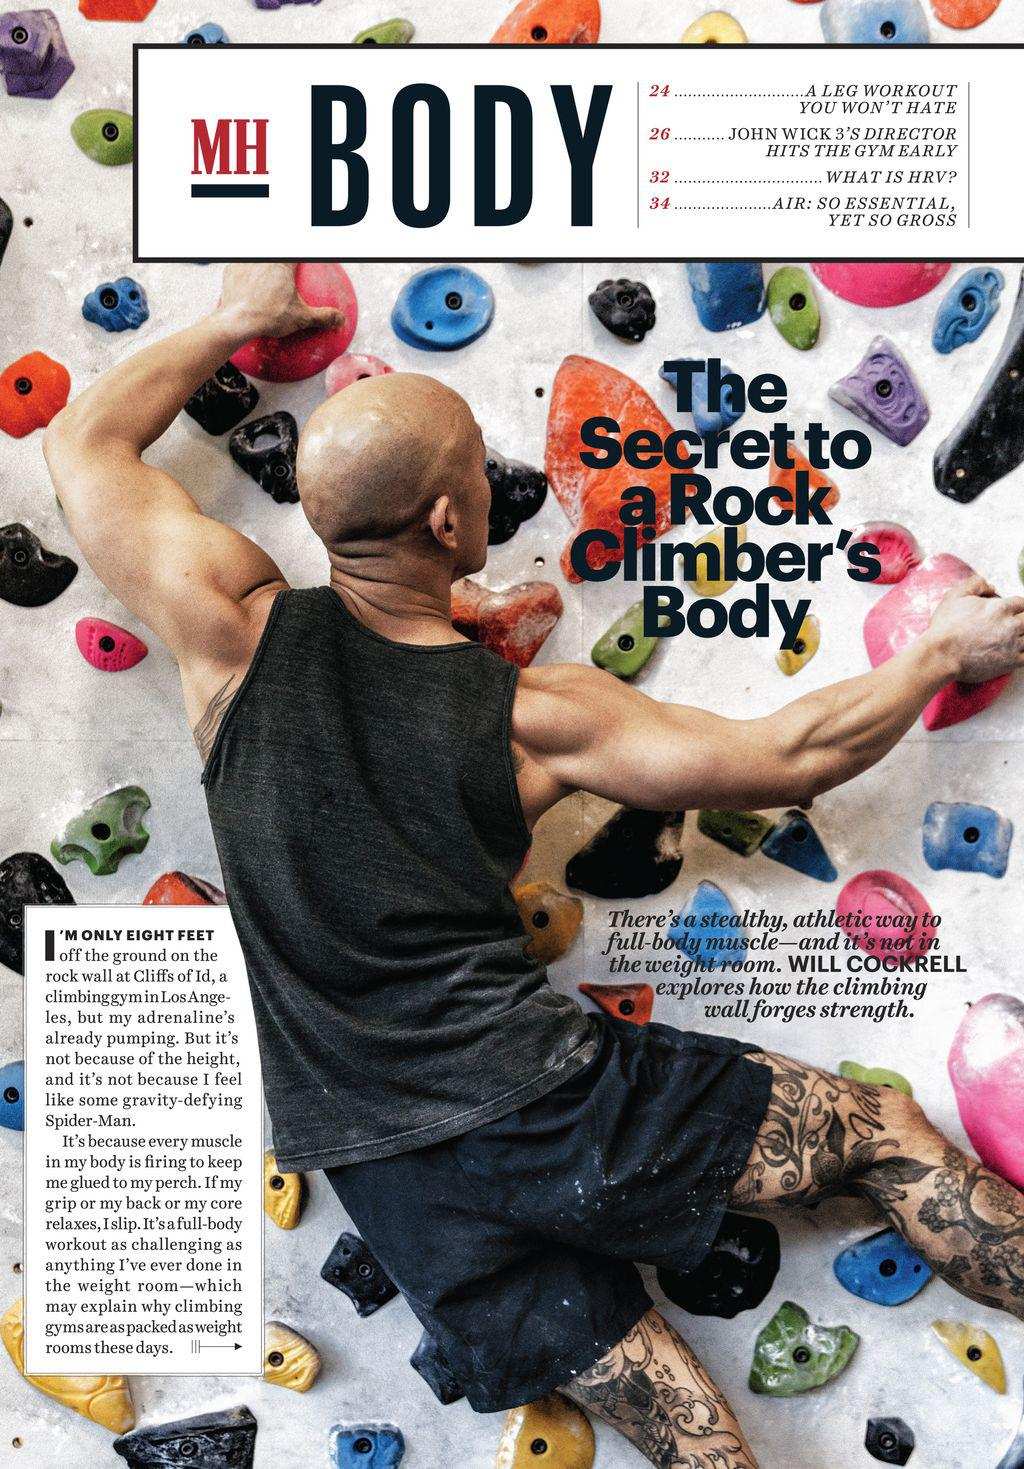 The Secret to a Rock Climber's Body | Scribd